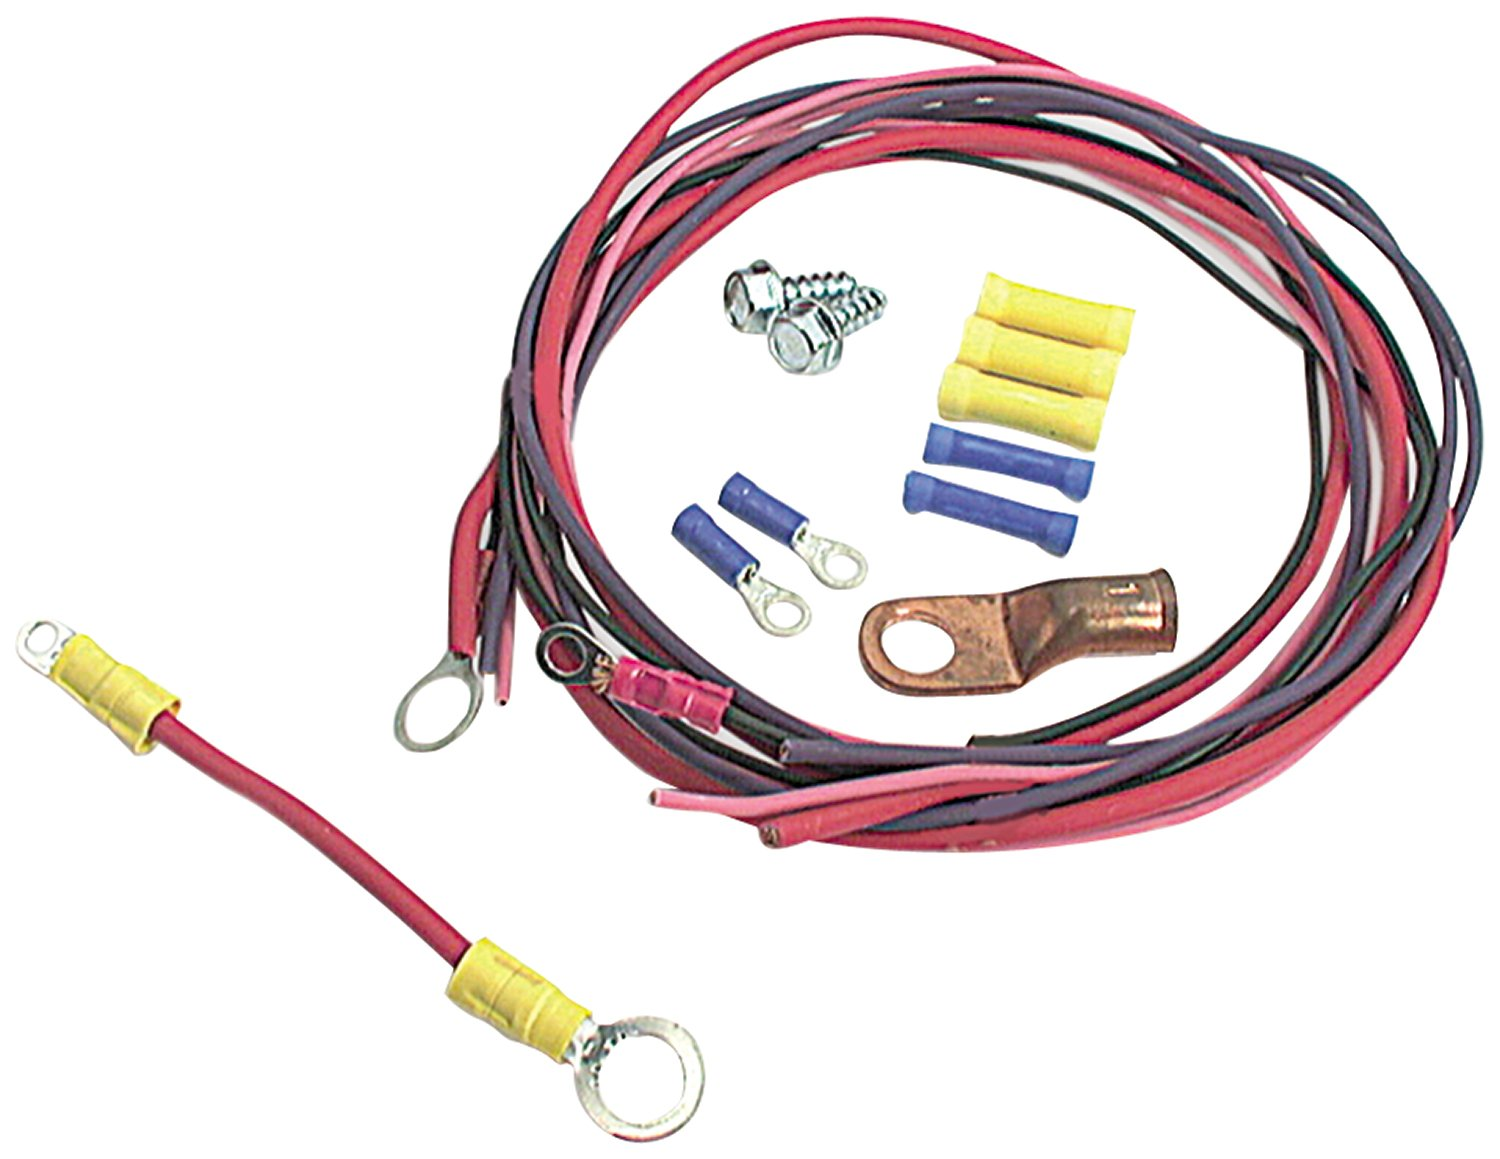 Allstar ALL76201 Solenoid Wiring Kit for Ford Style Solenoid